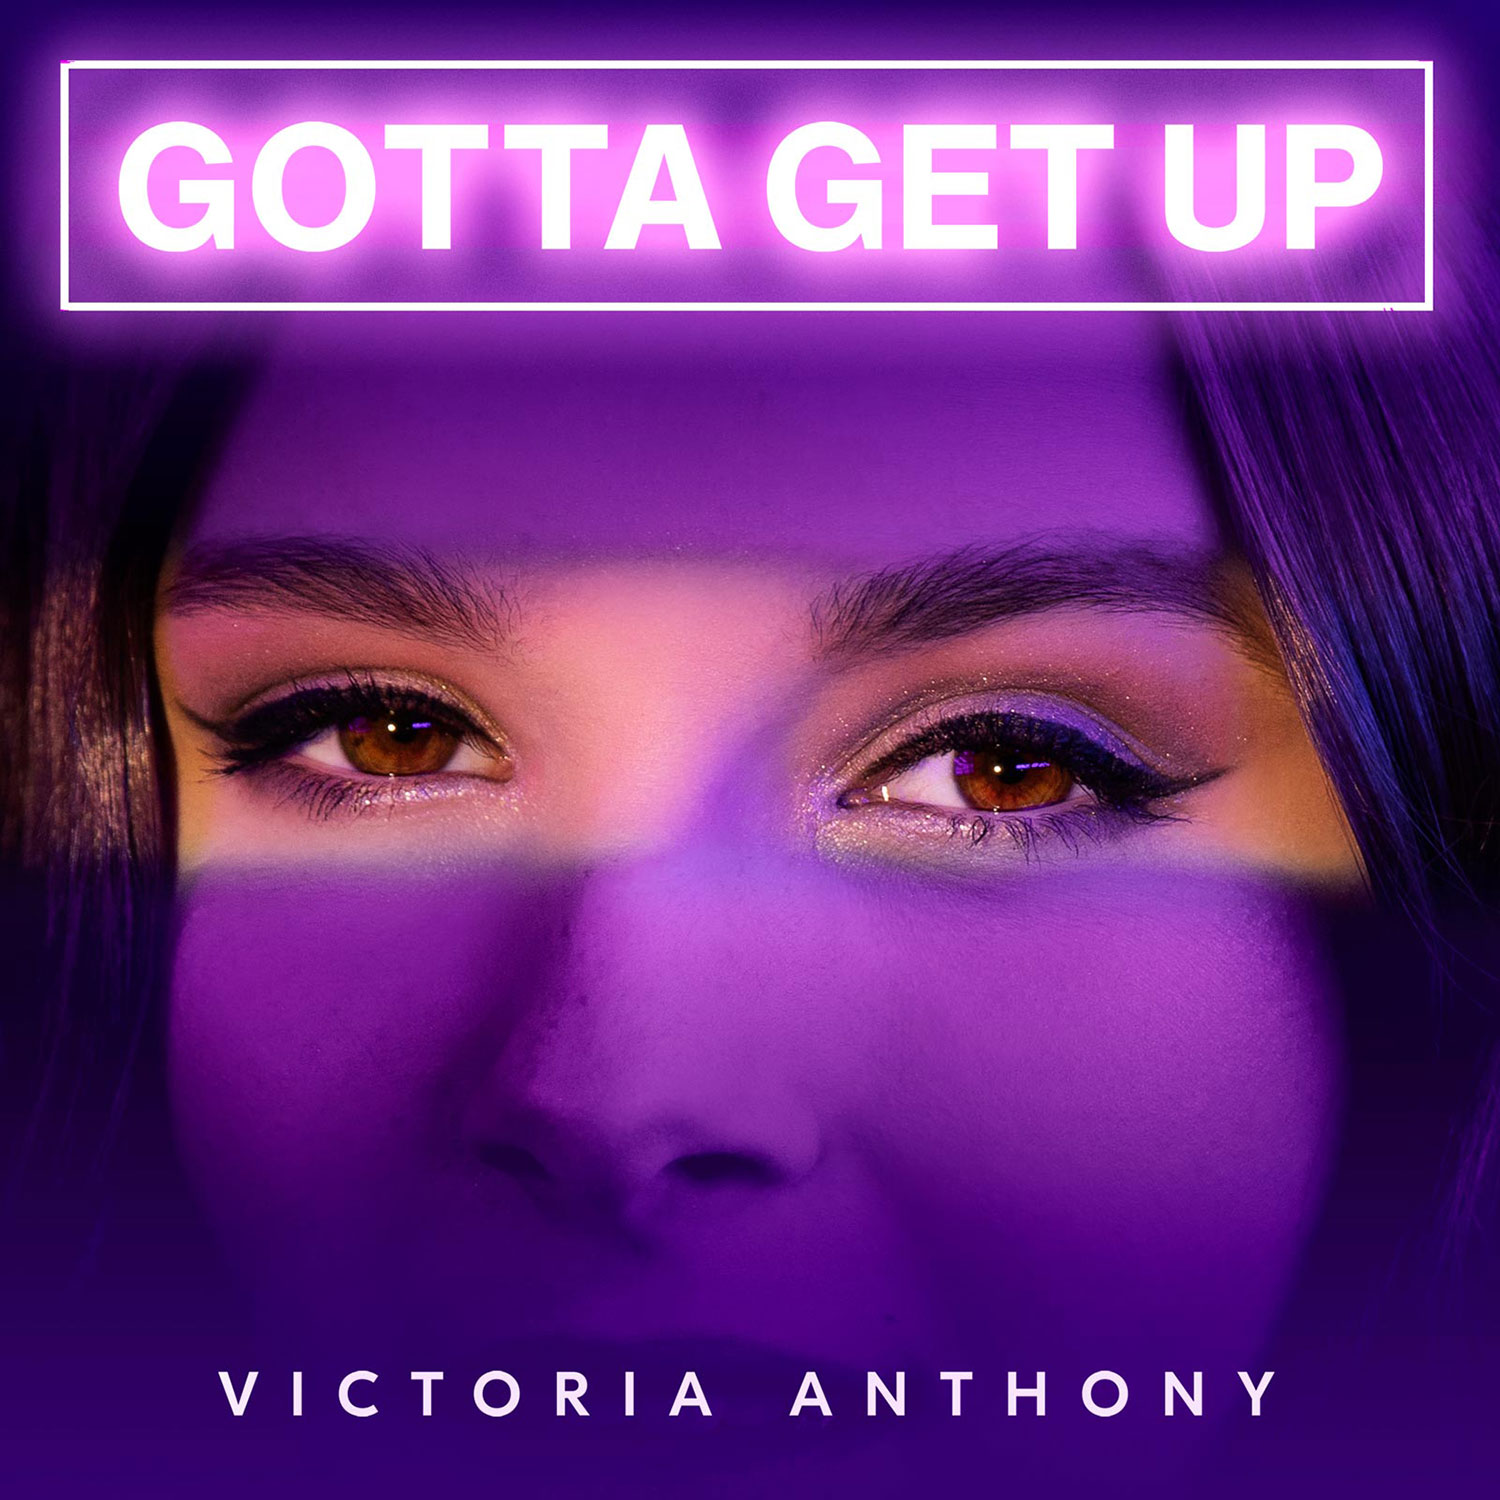 Gotta Get Up - Single by Victoria Anthony